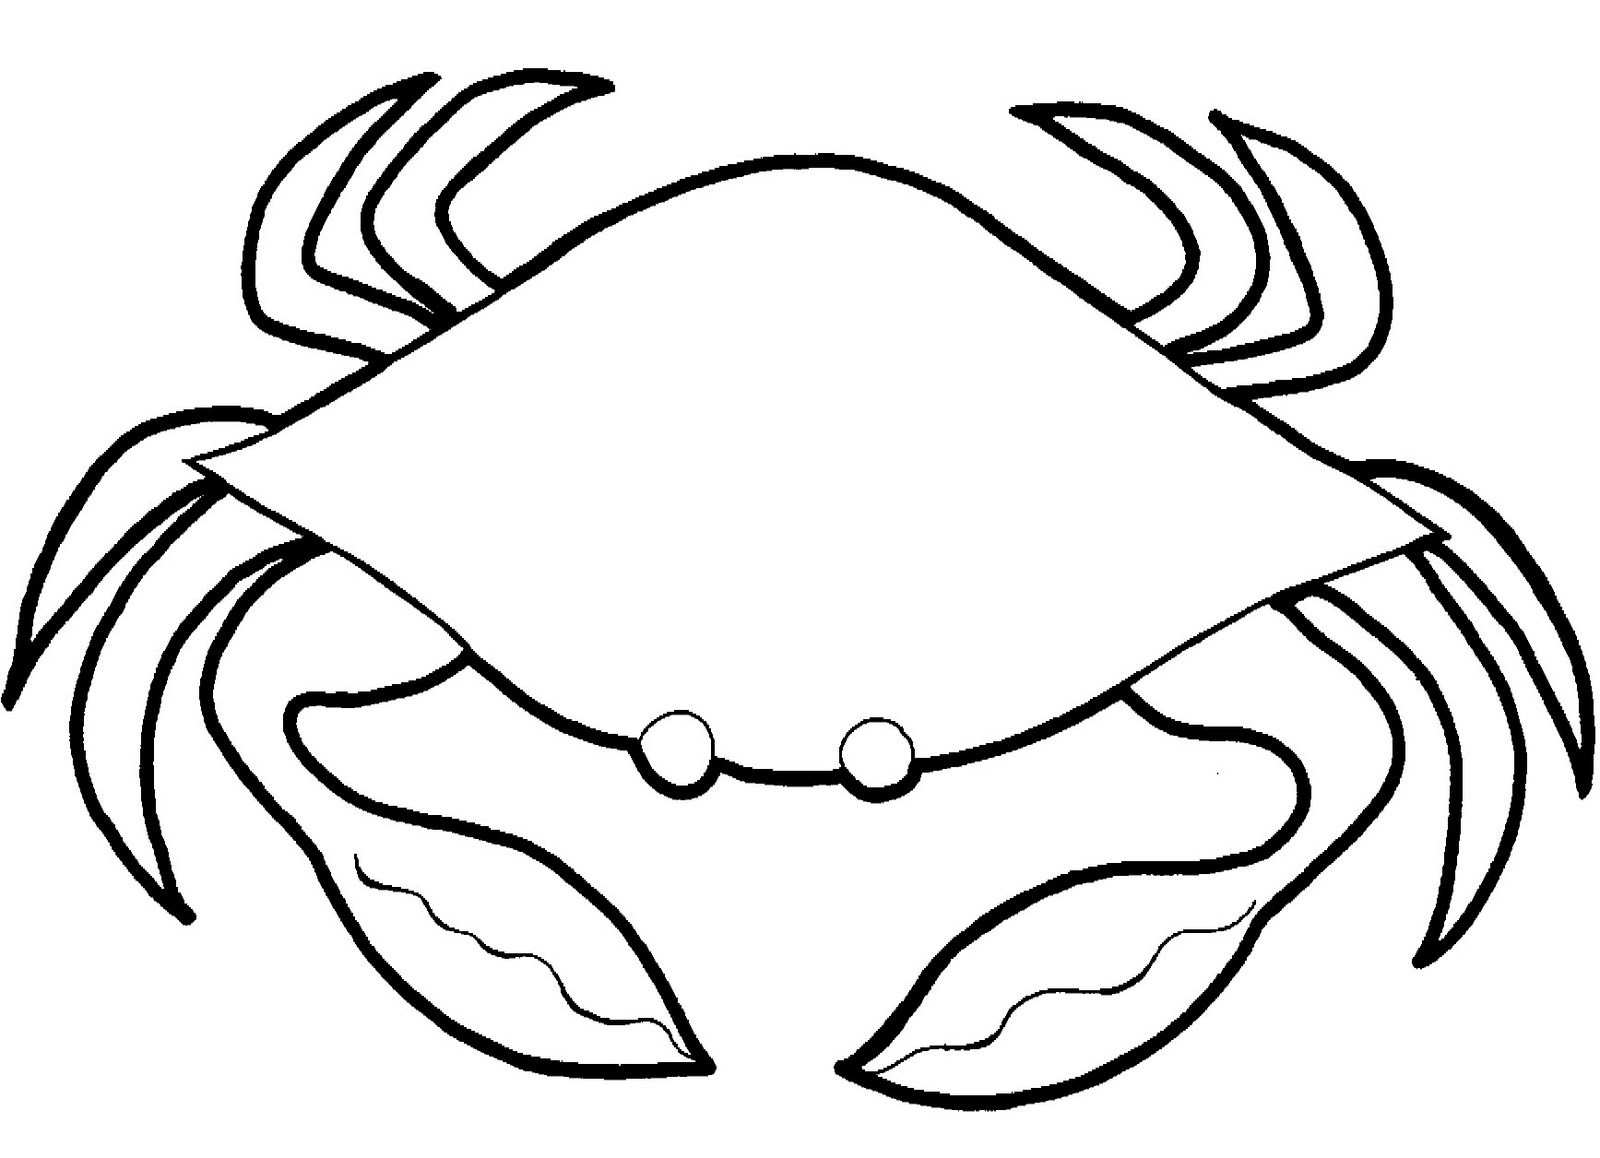 Crab Outline Drawing at GetDrawings.com | Free for personal use Crab ...